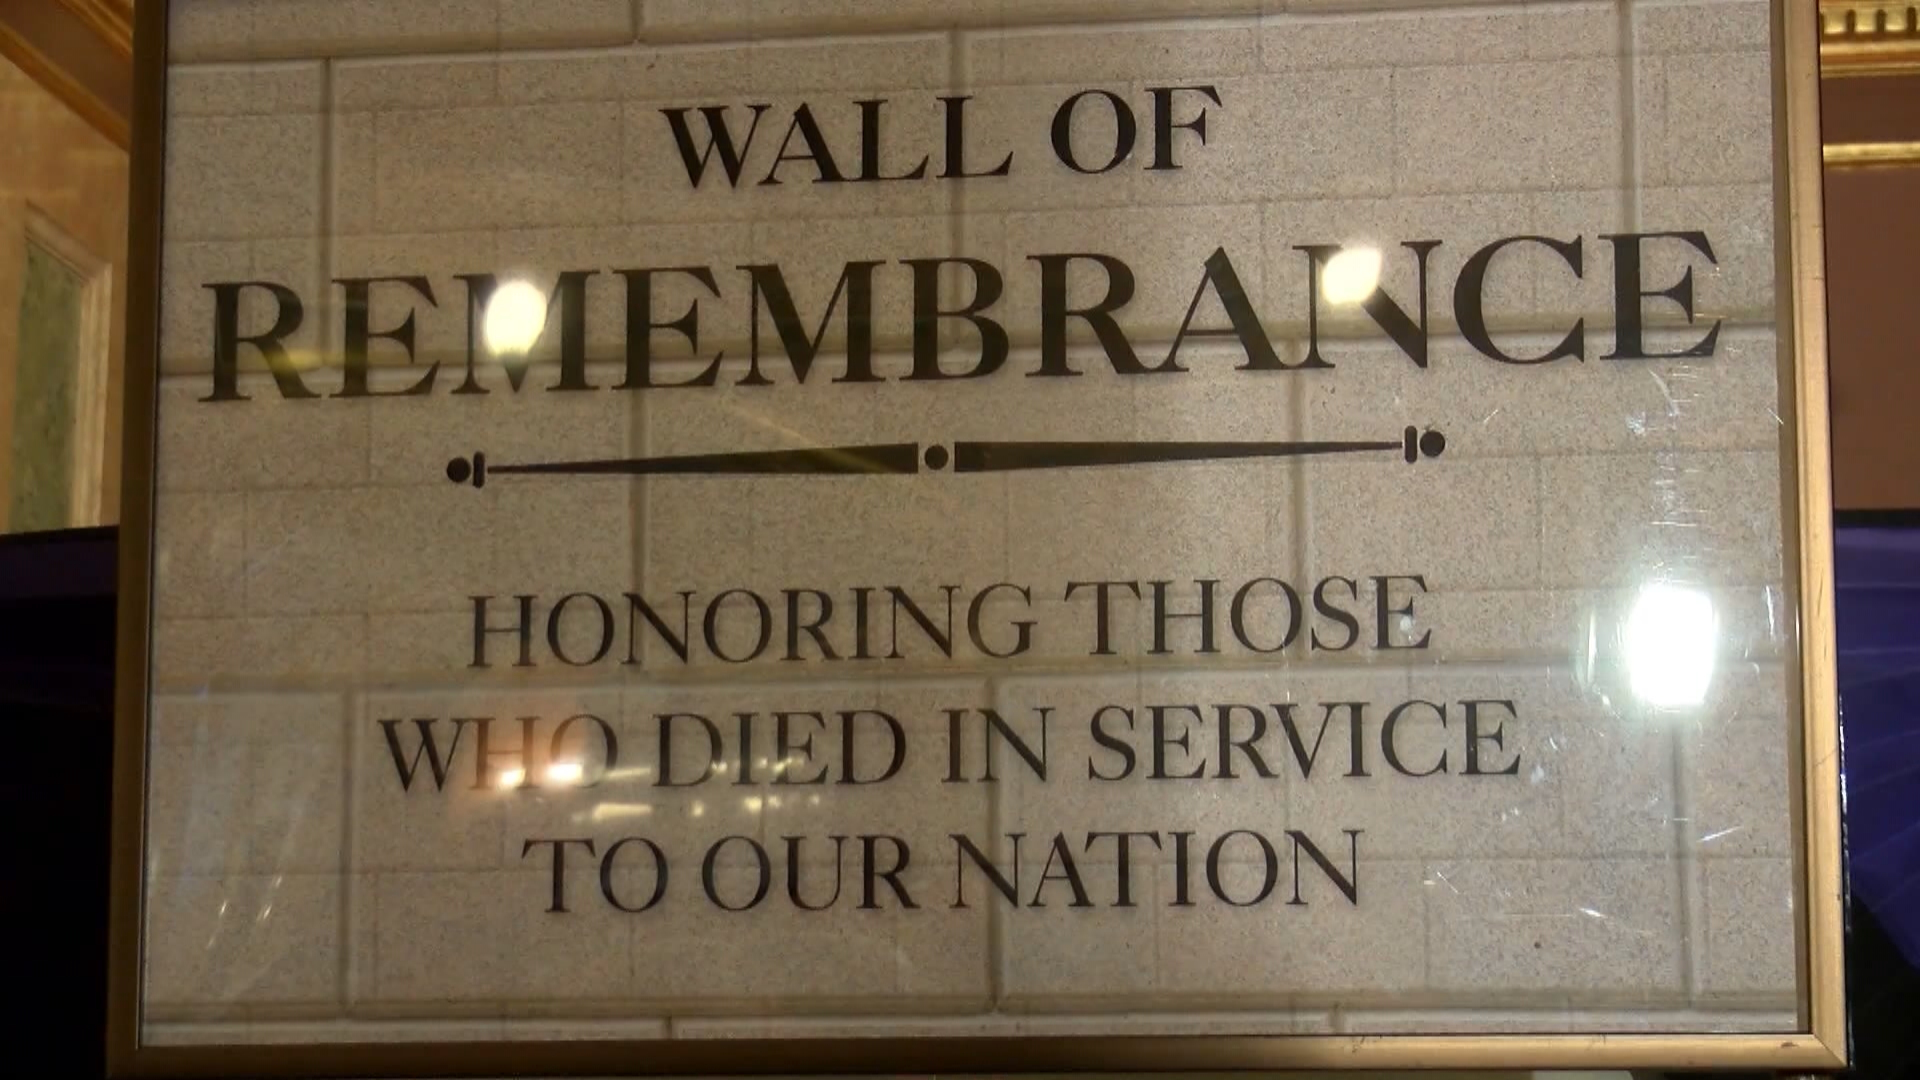 wall of remembrance_1496180196612.jpg